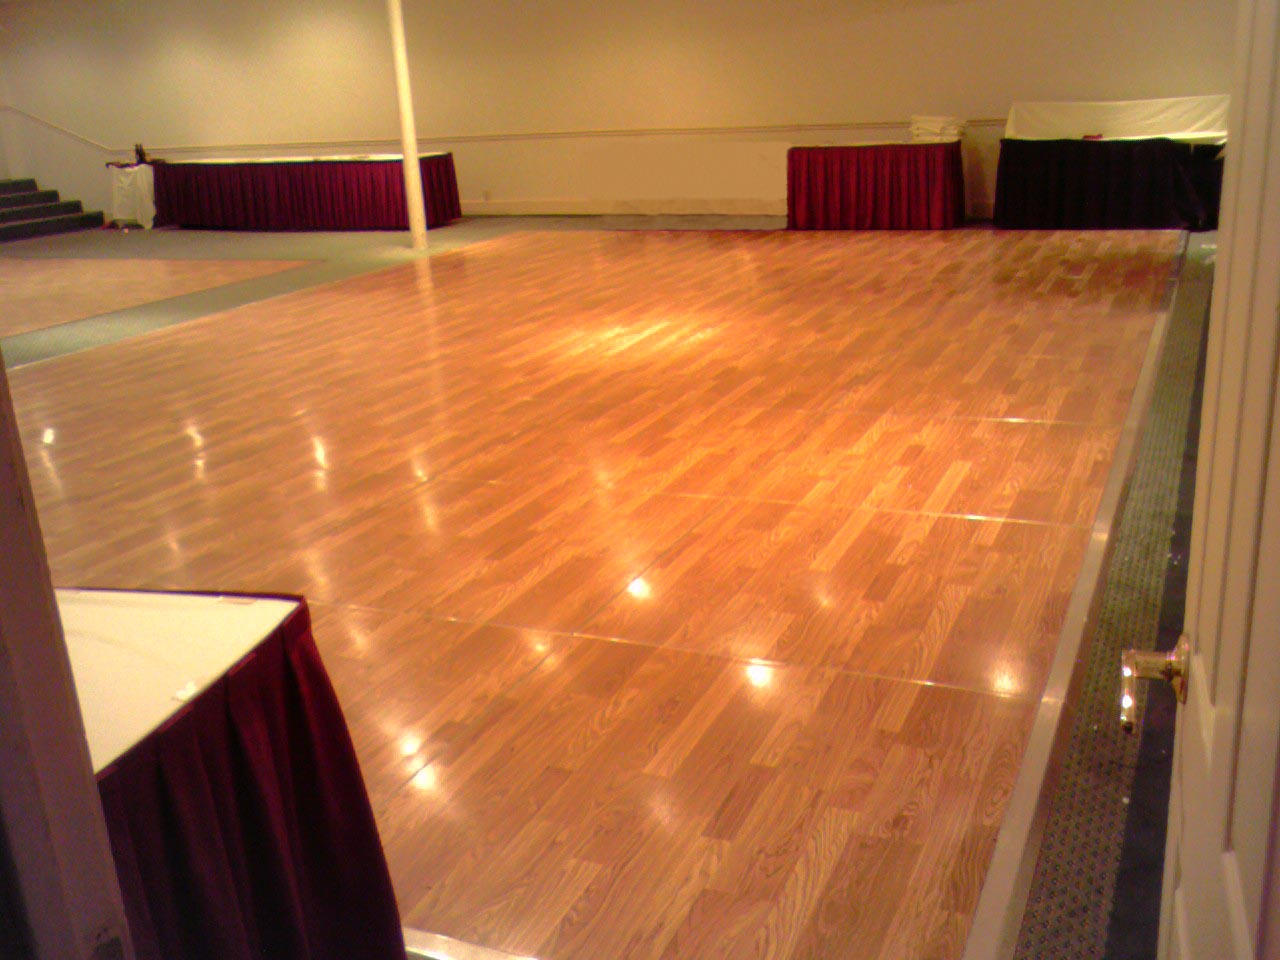 Floor rental add a dance floor to supplement your existing dance floor solutioingenieria Images